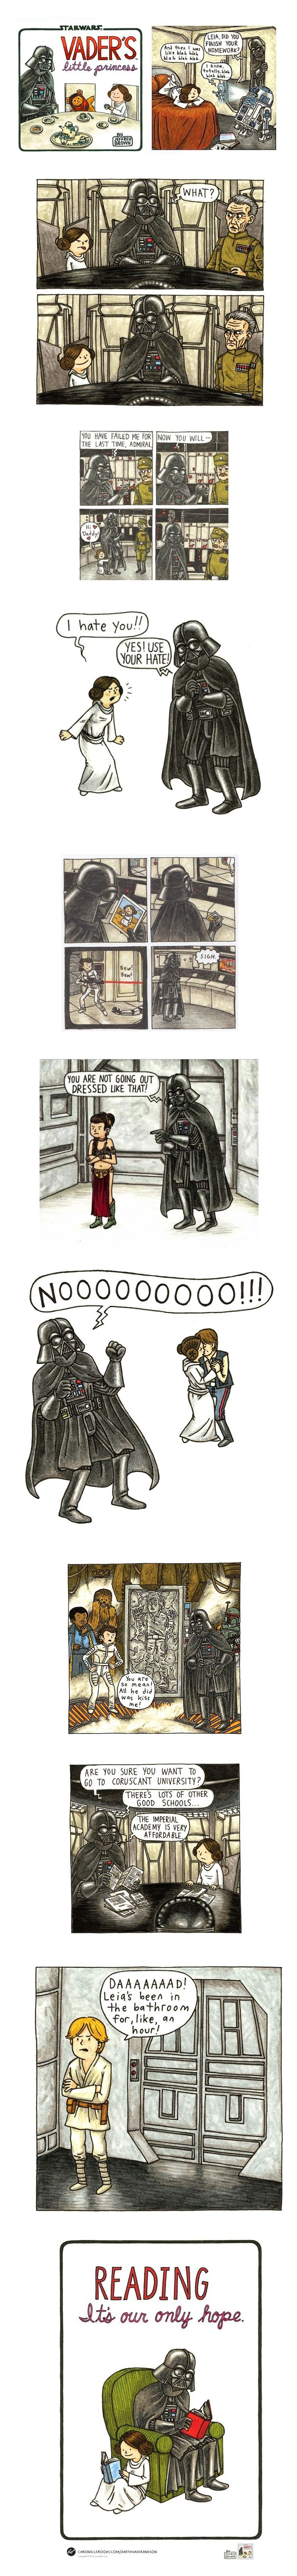 (Vader's Little Princess by Jeffrey Brown)